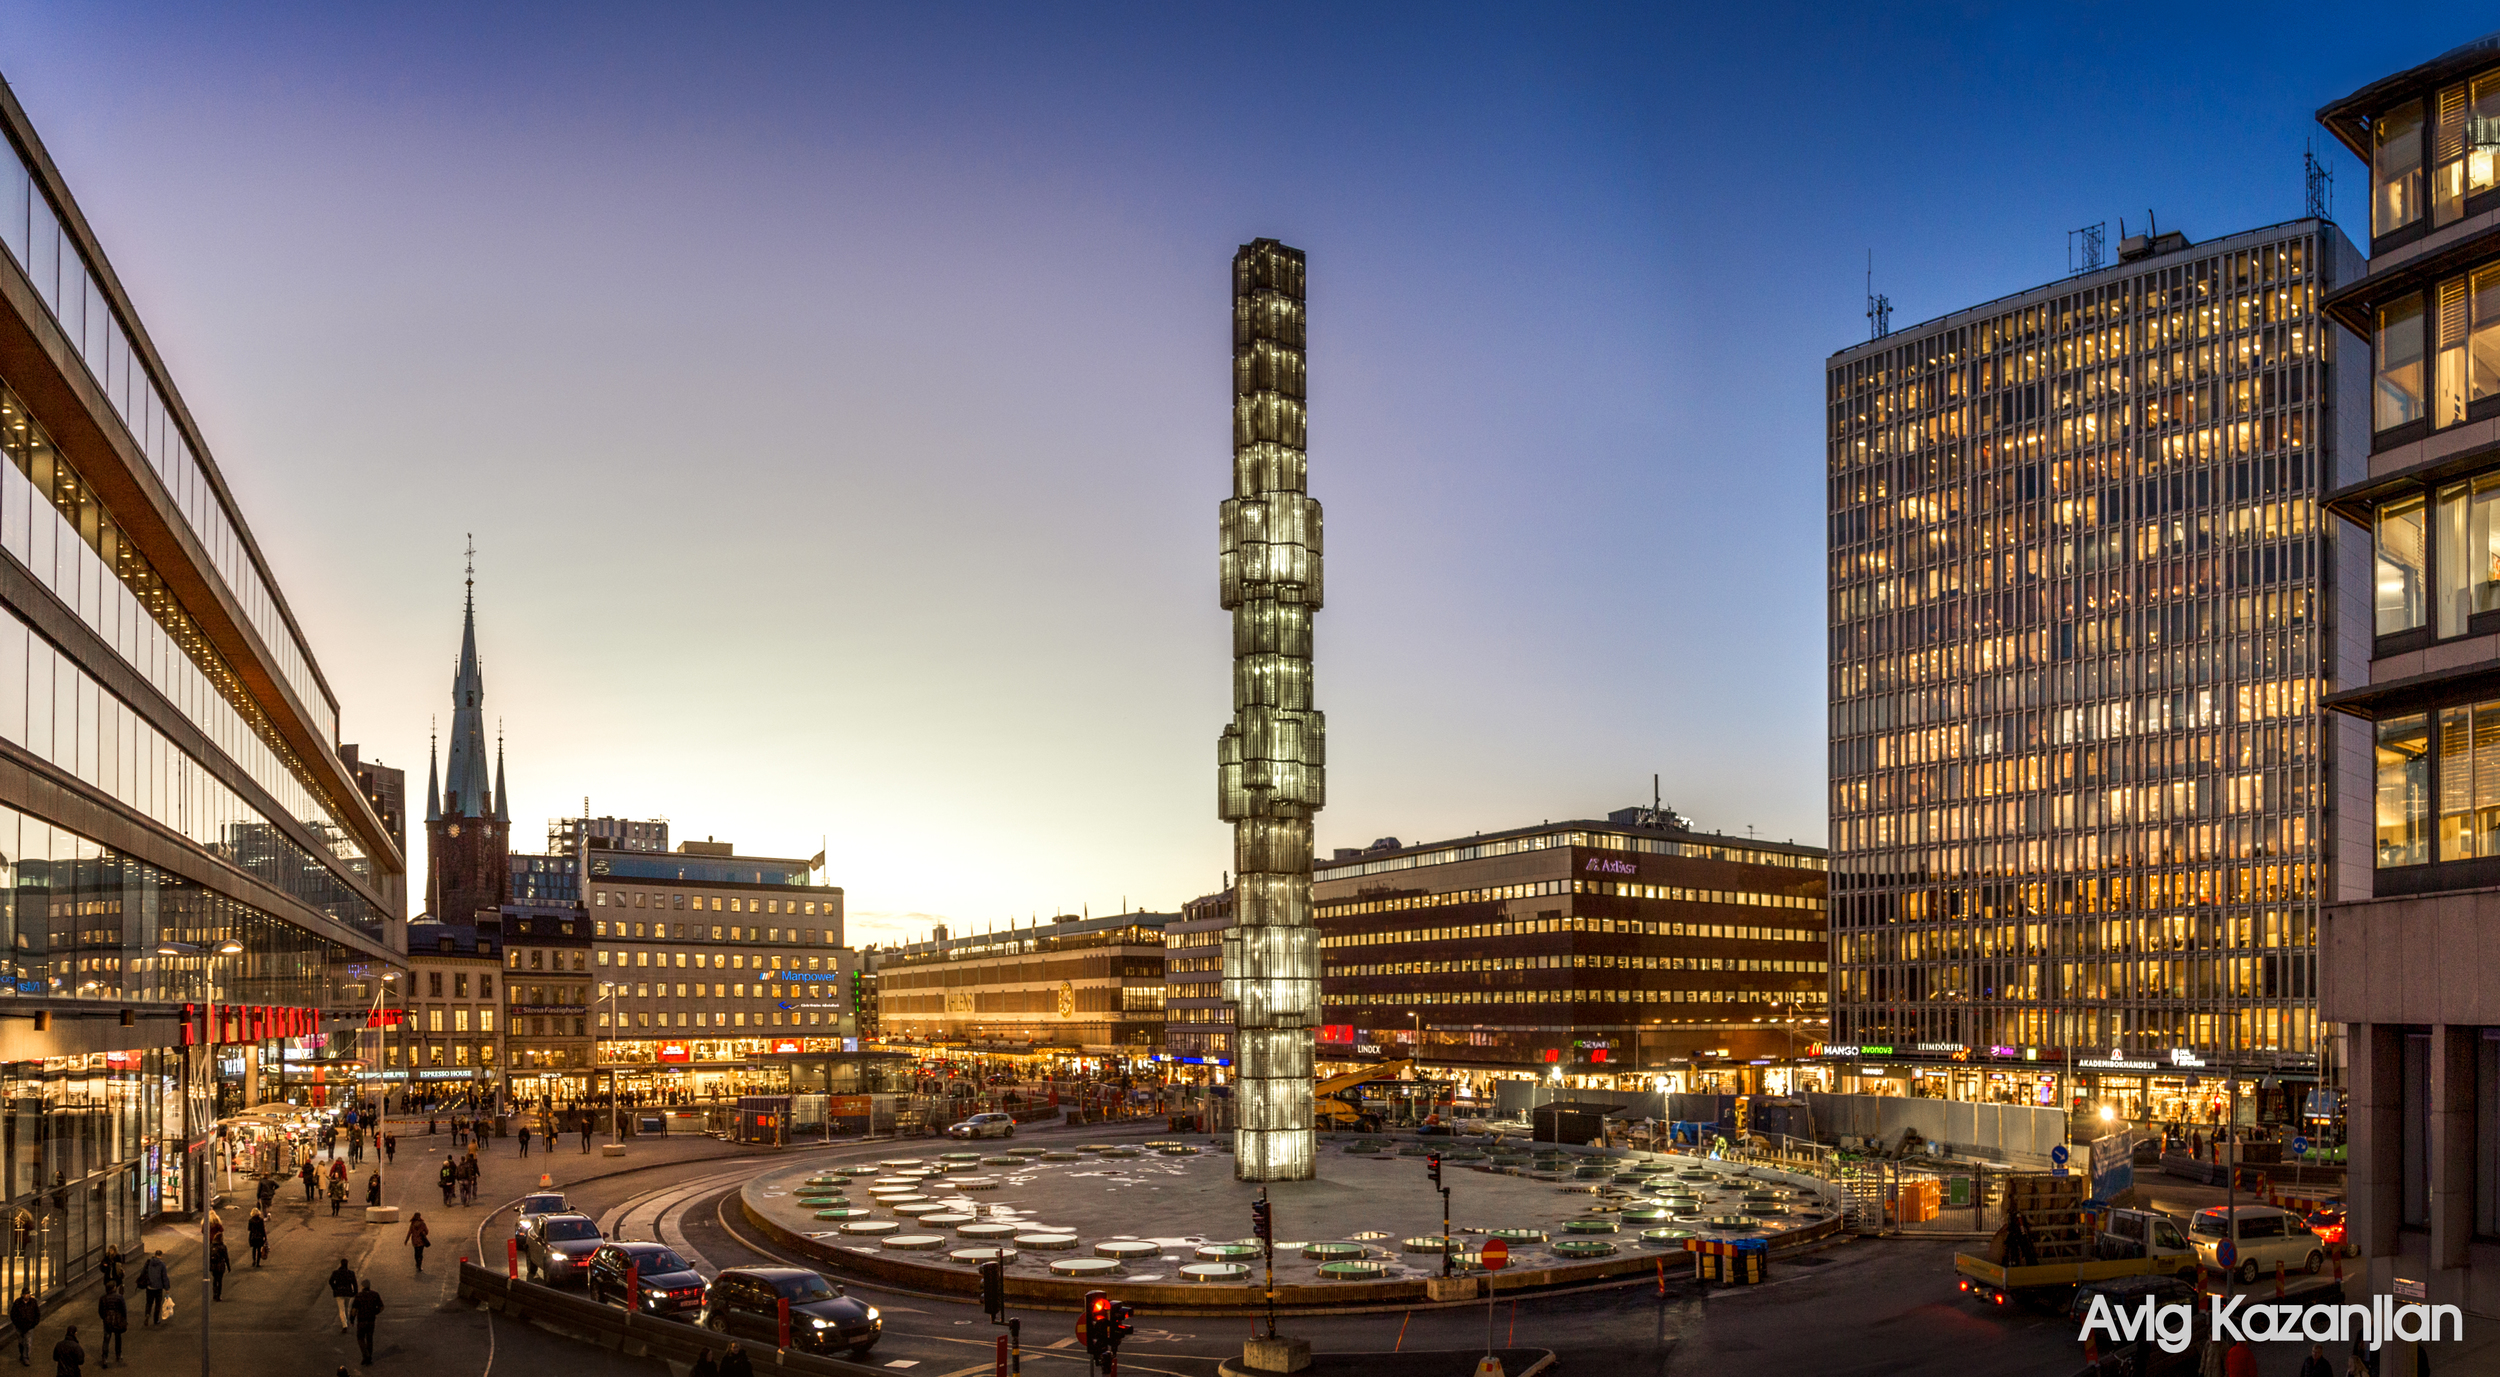 Stockholm Centrum city avigphoto photographer